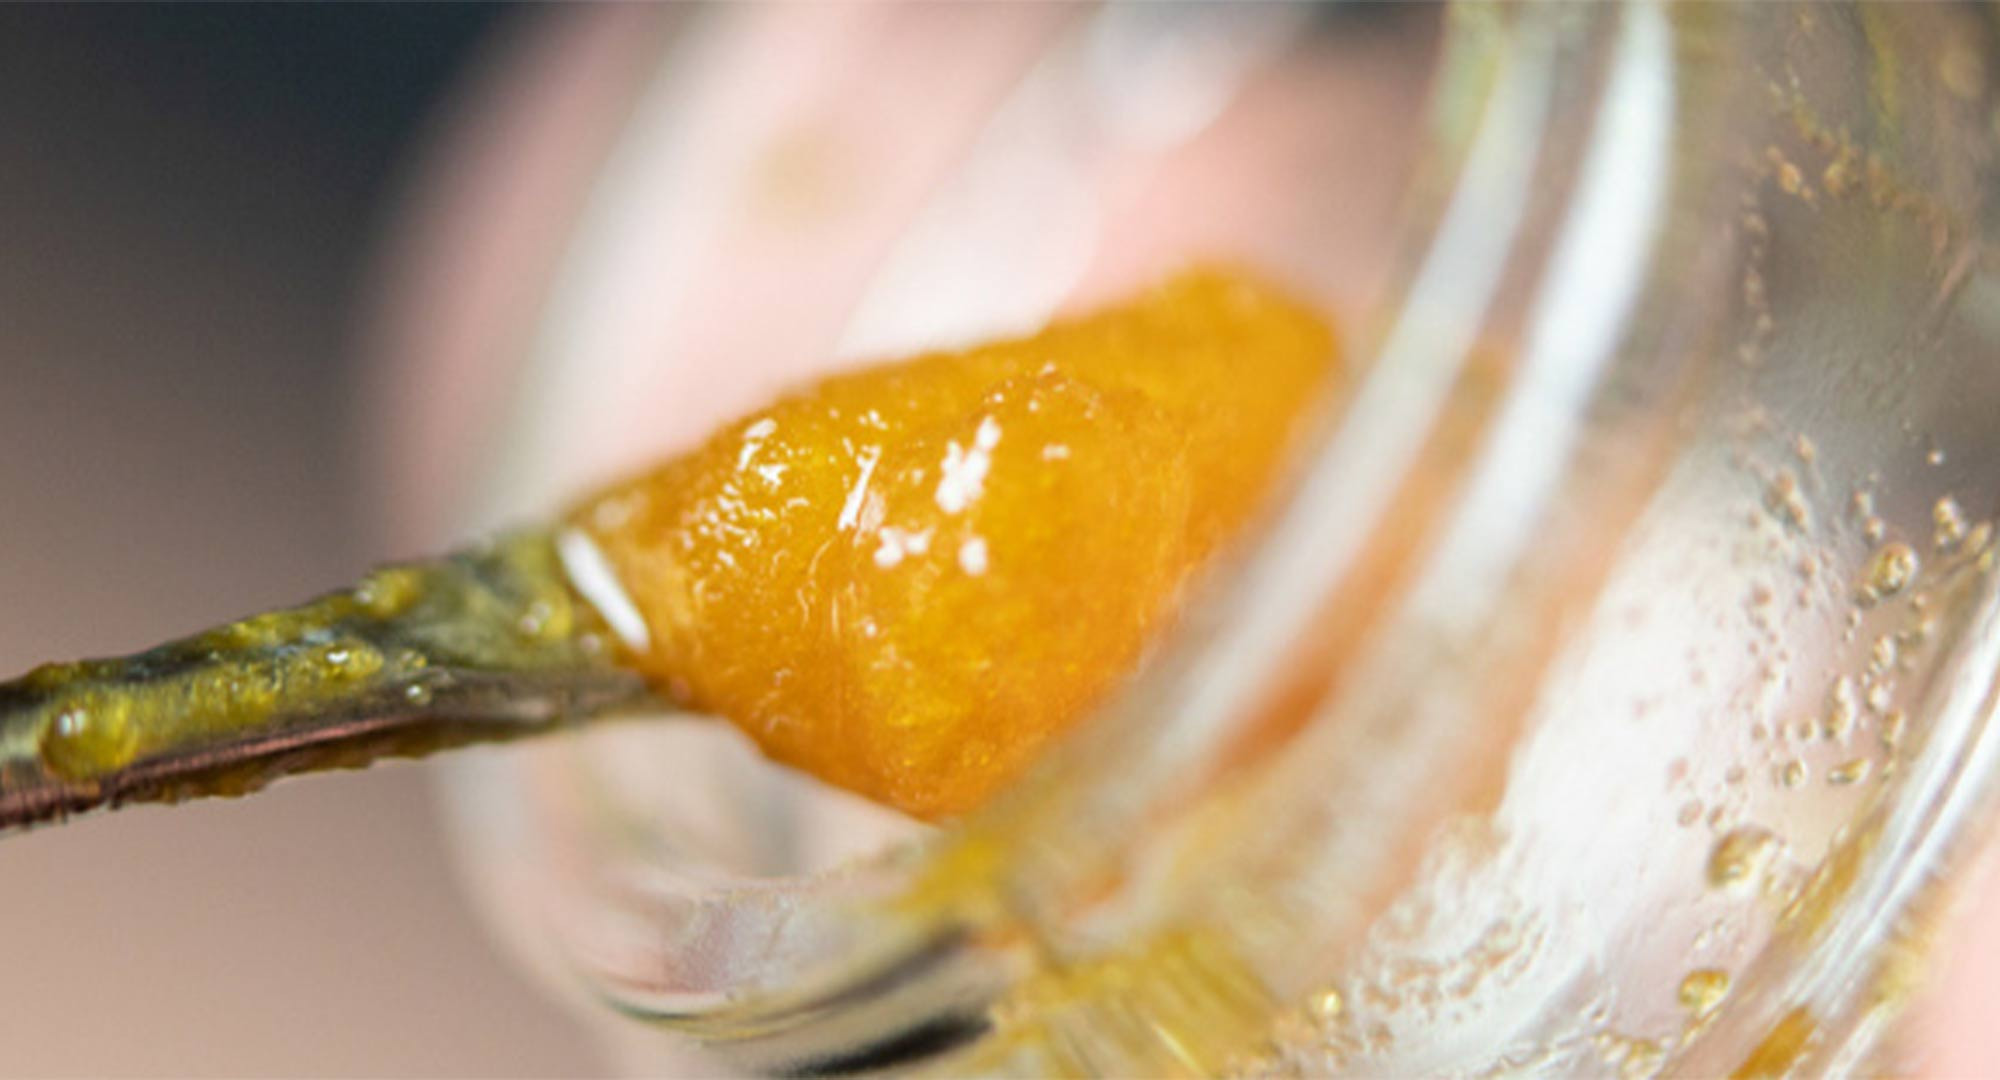 Cultivate Las Vegas dispensary. Resin vs. Live Resin vs. Rosin: What's the Difference?